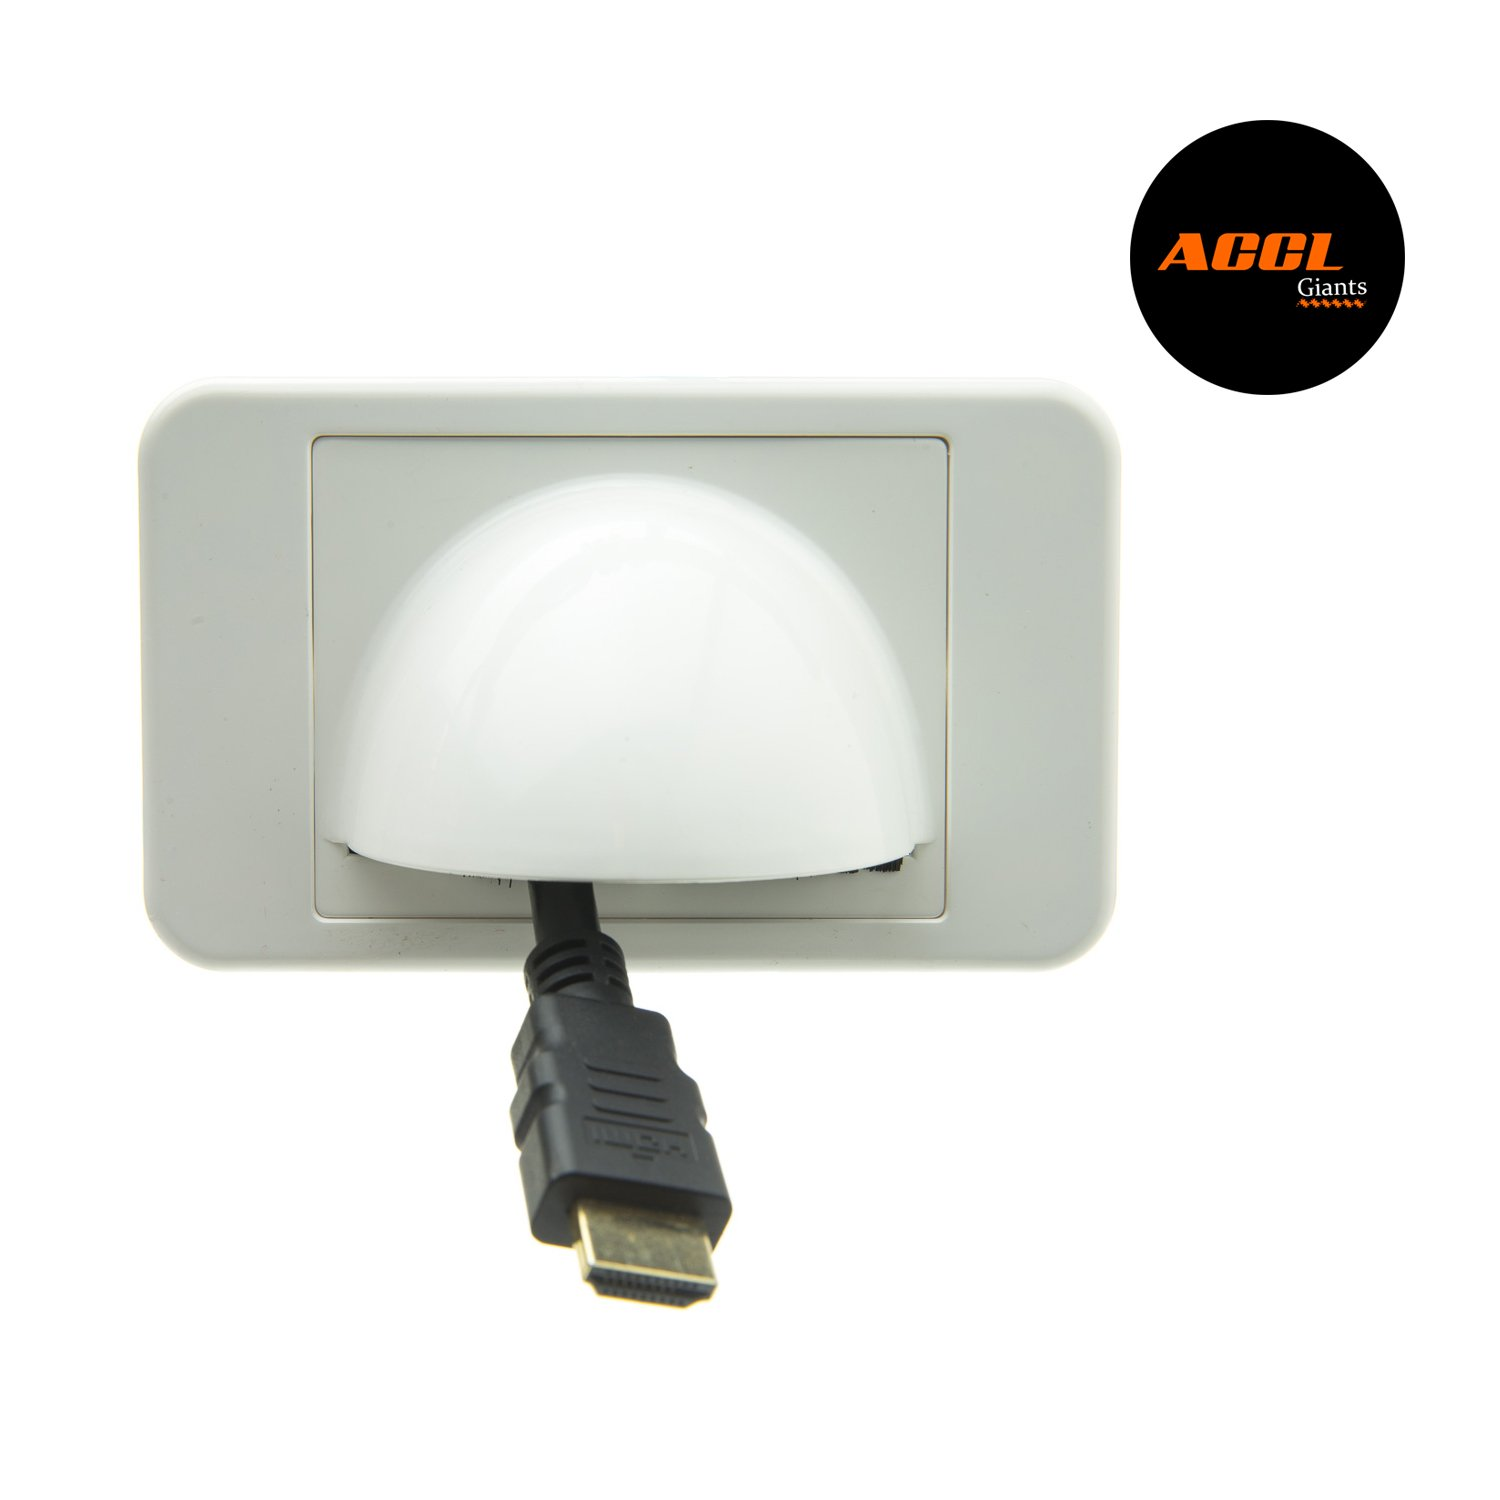 ACCL Wall Plate Insert, White with Brush Cable Pass Through for Home/Office or Hotel, 3 Pack